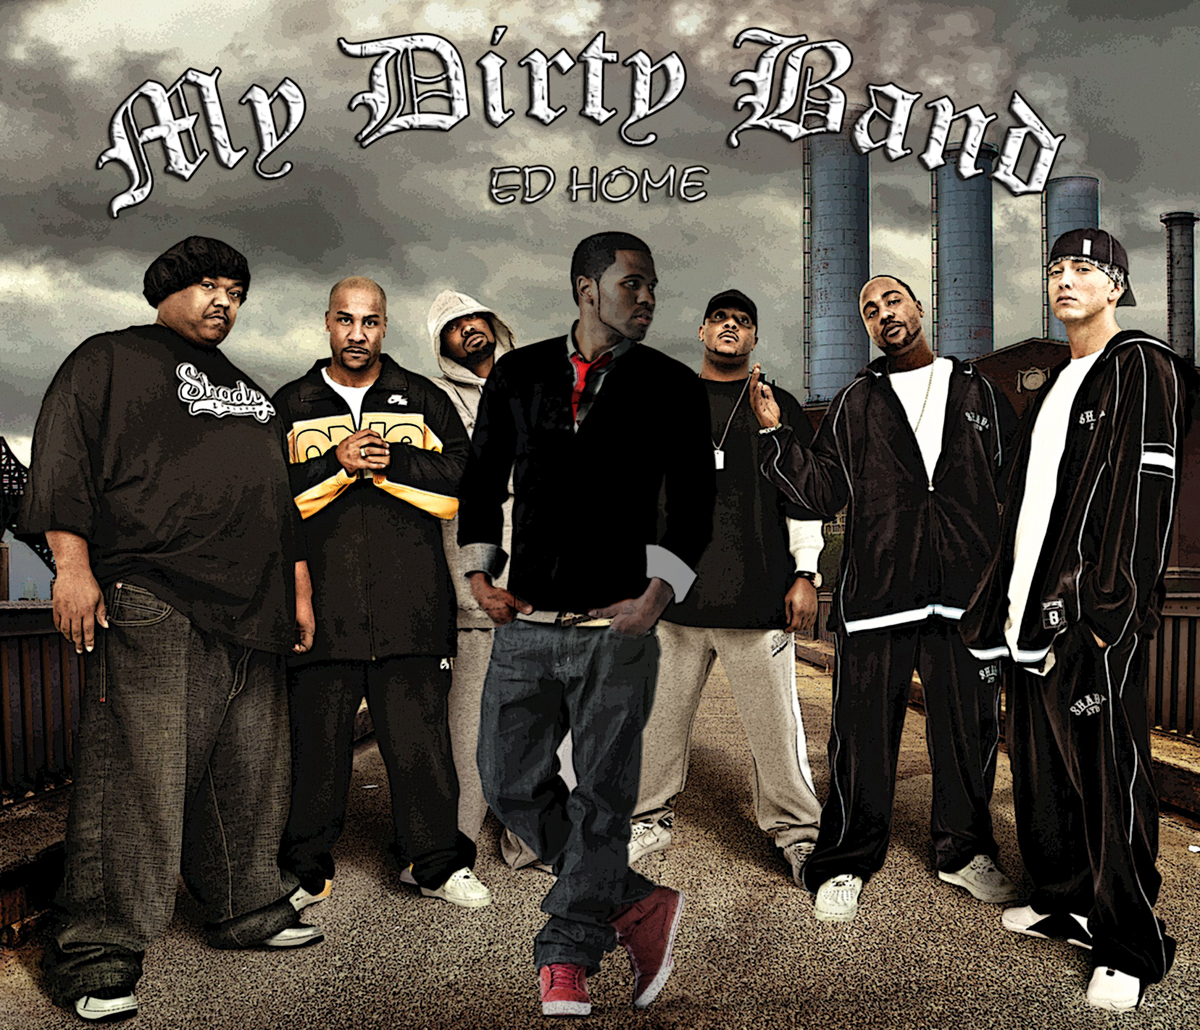 17 under the influence featuring d-12